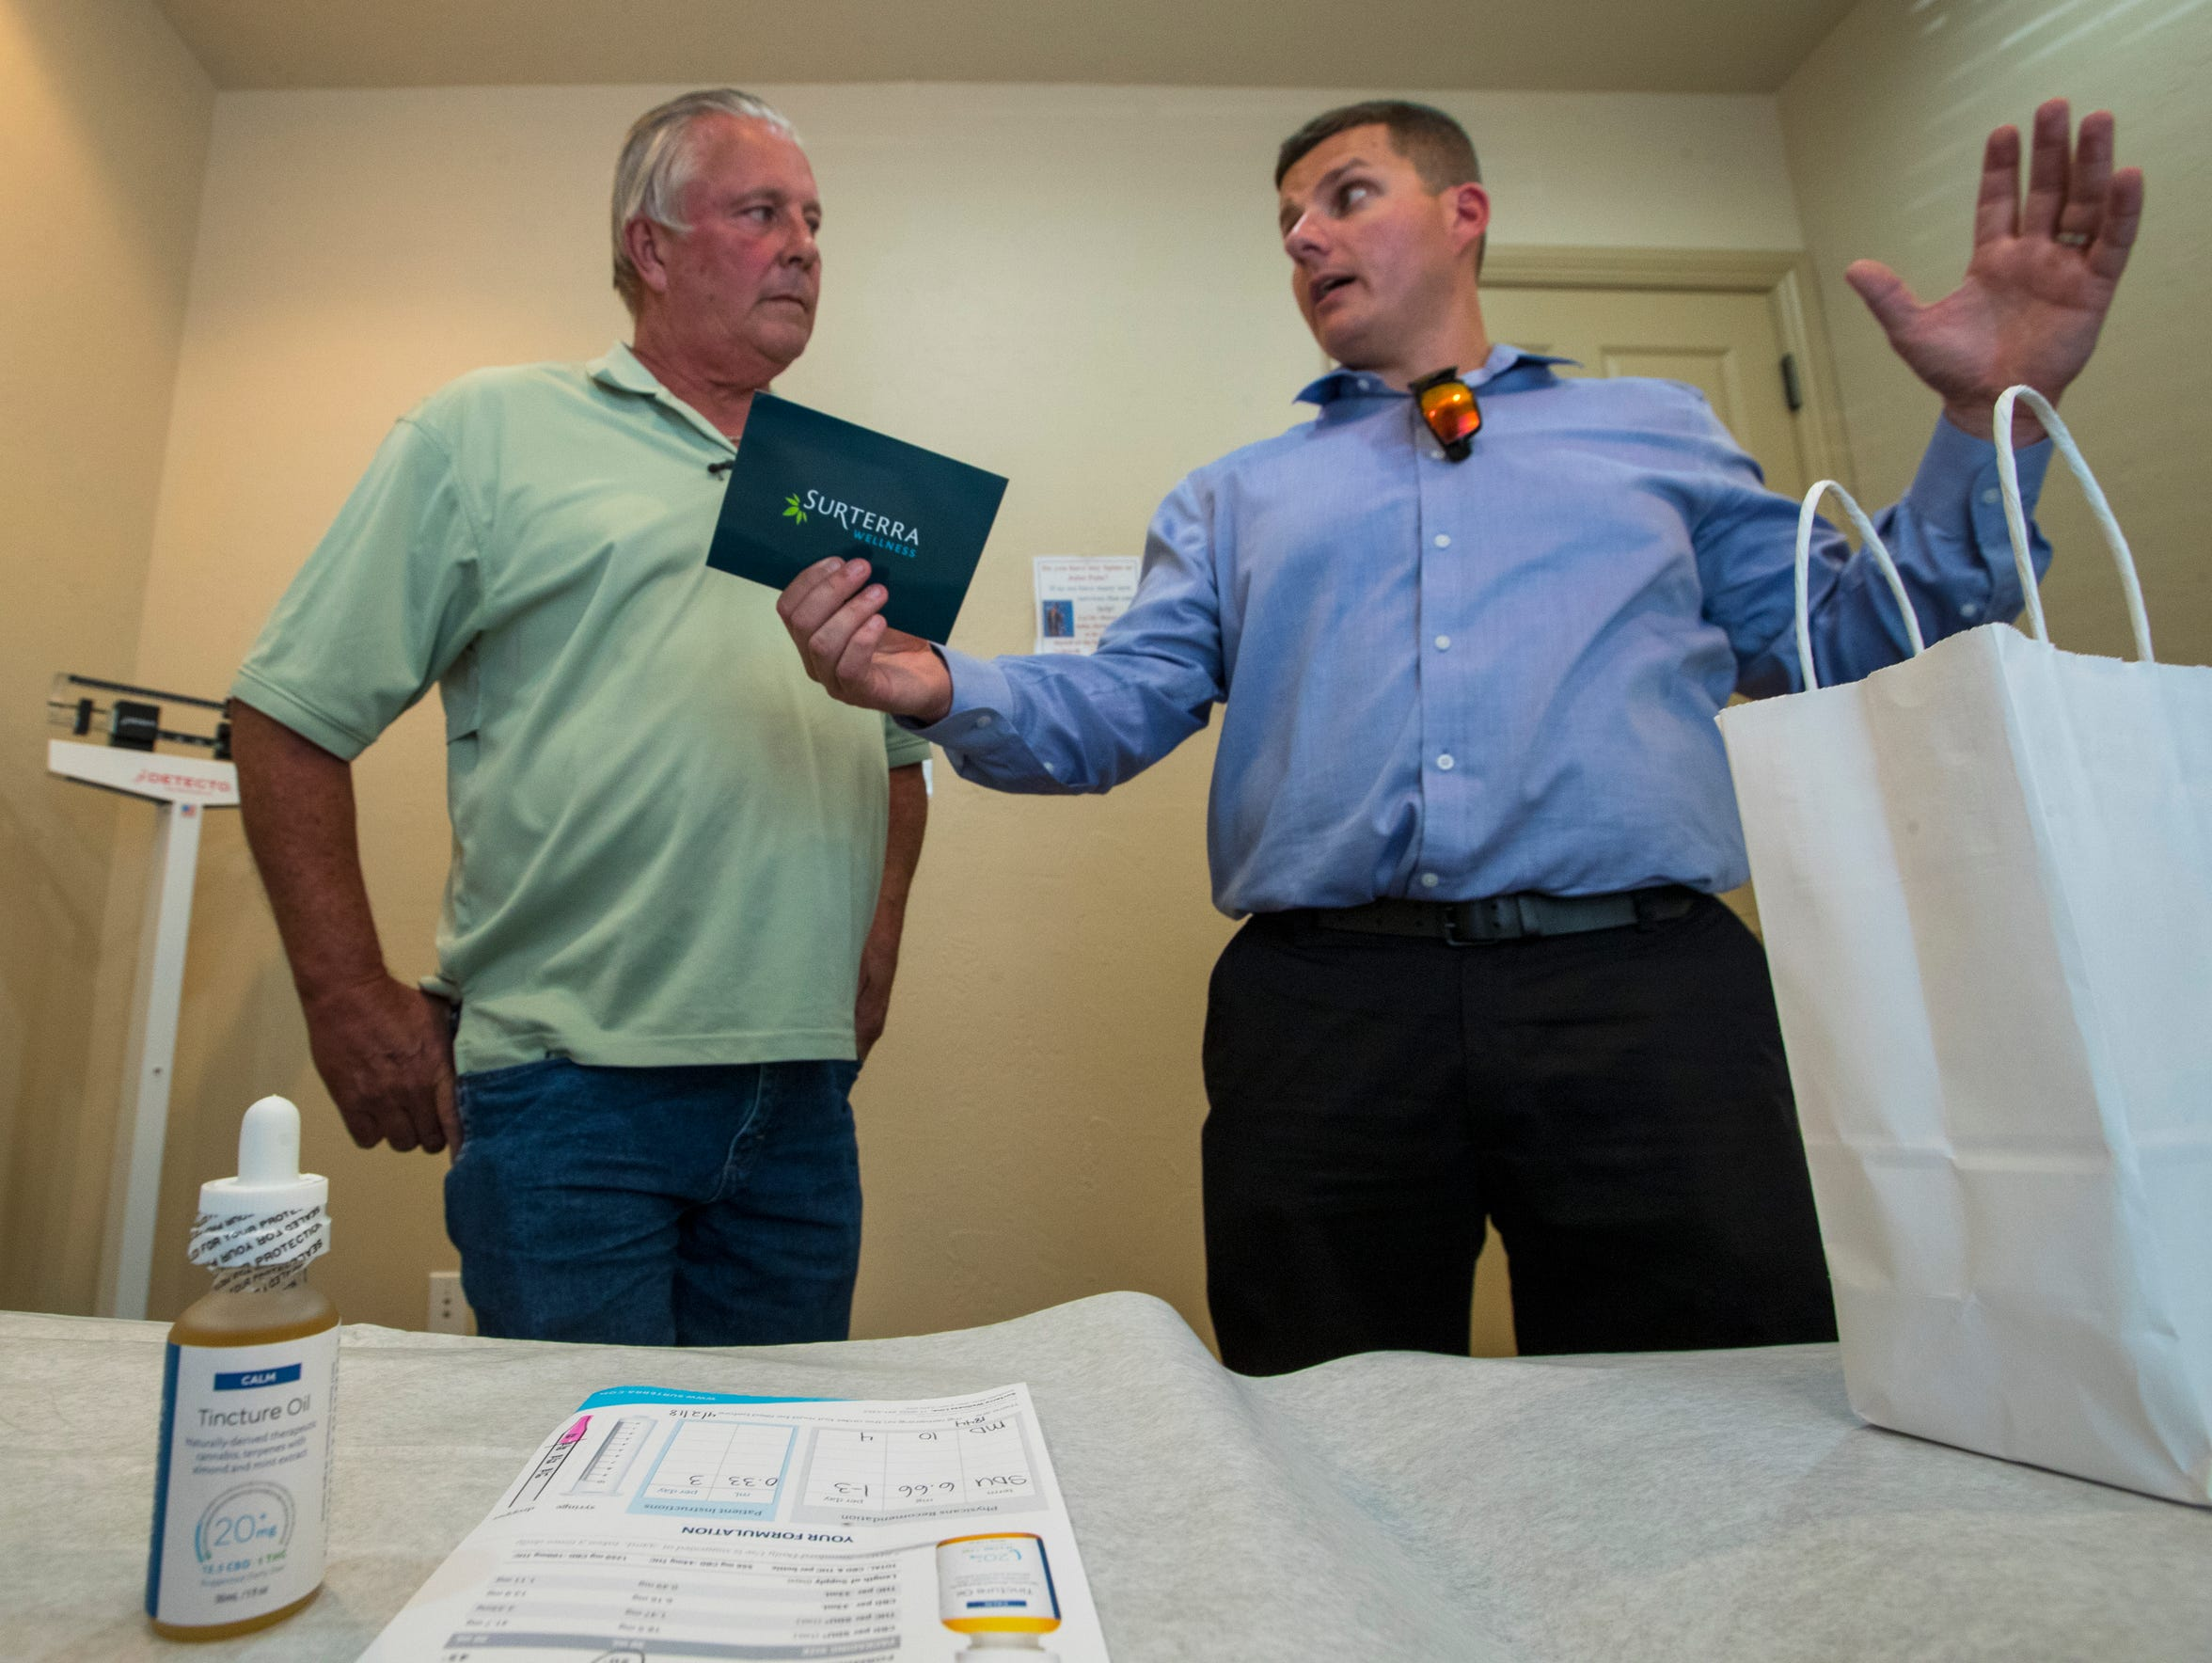 Allen Bills, left, a medical marijuana patient, discusses